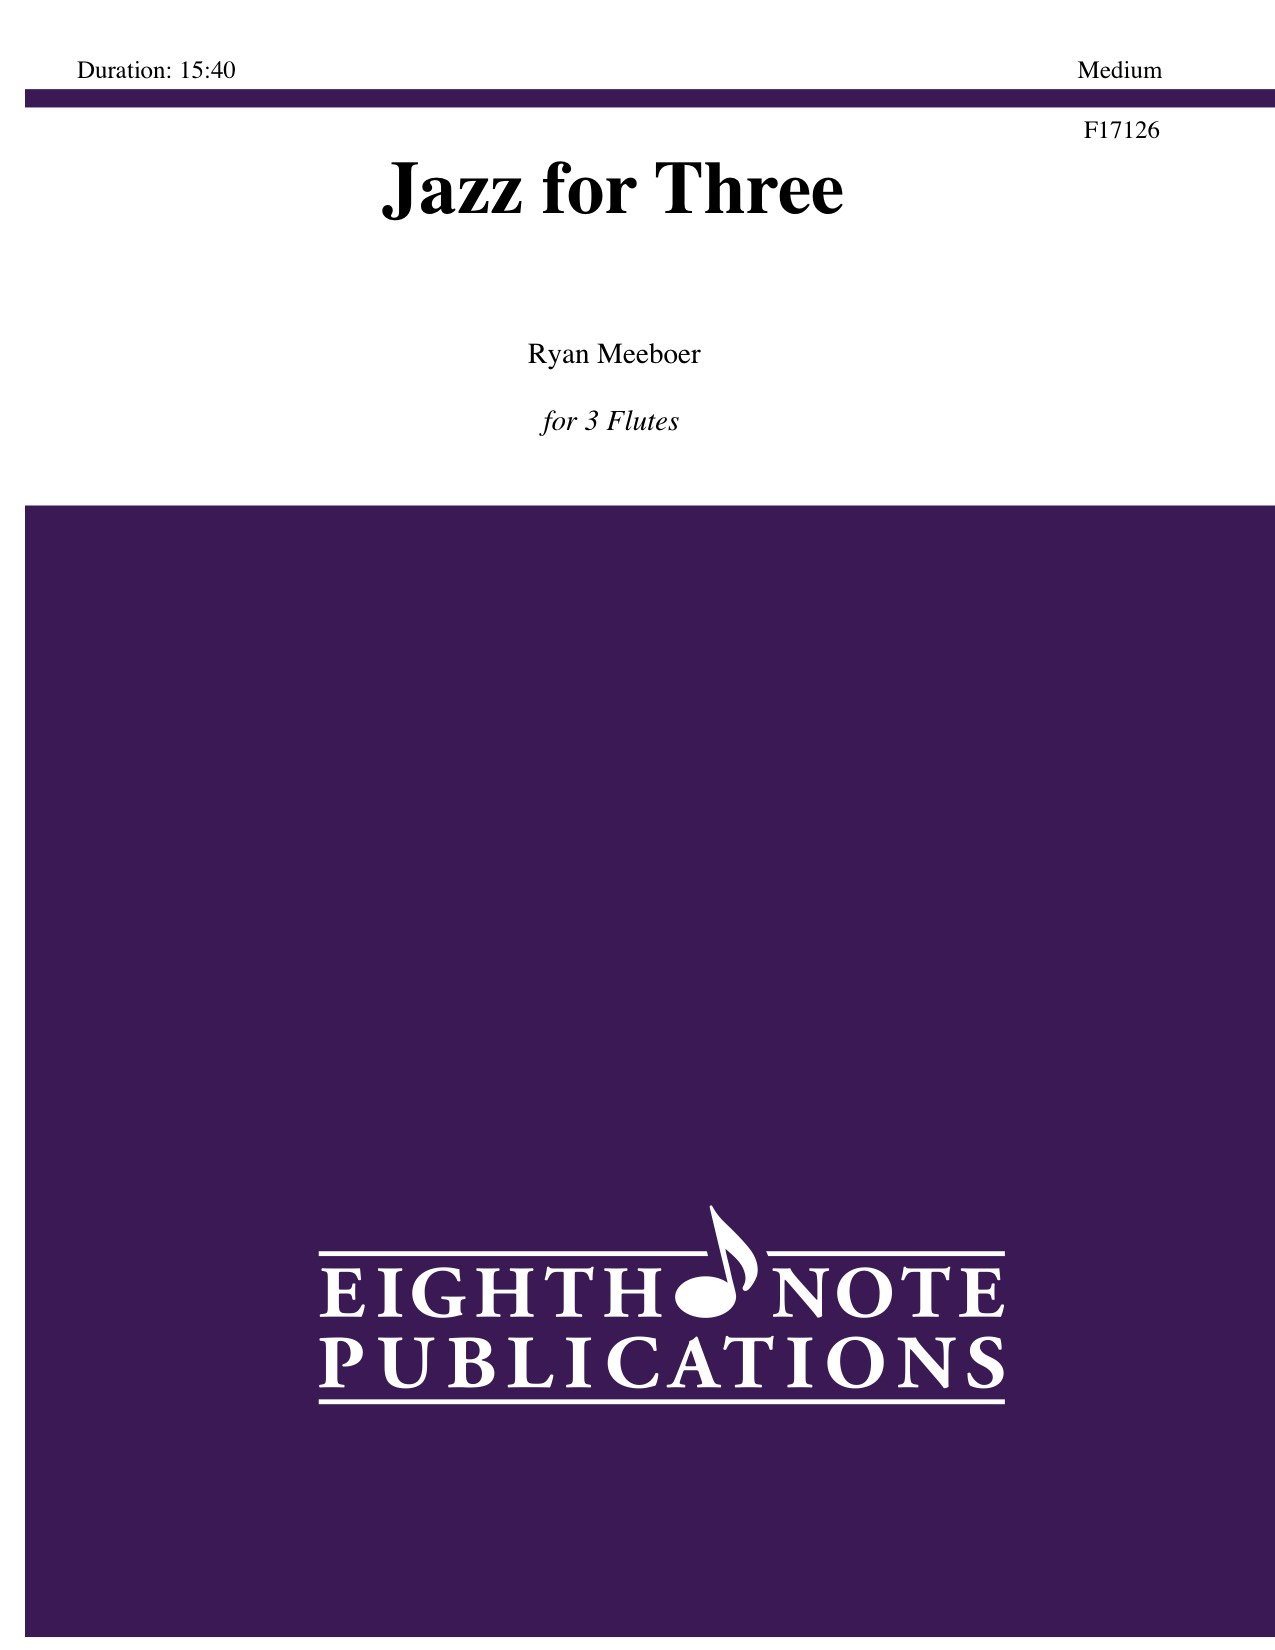 Jazz for Three - Ryan Meeboer